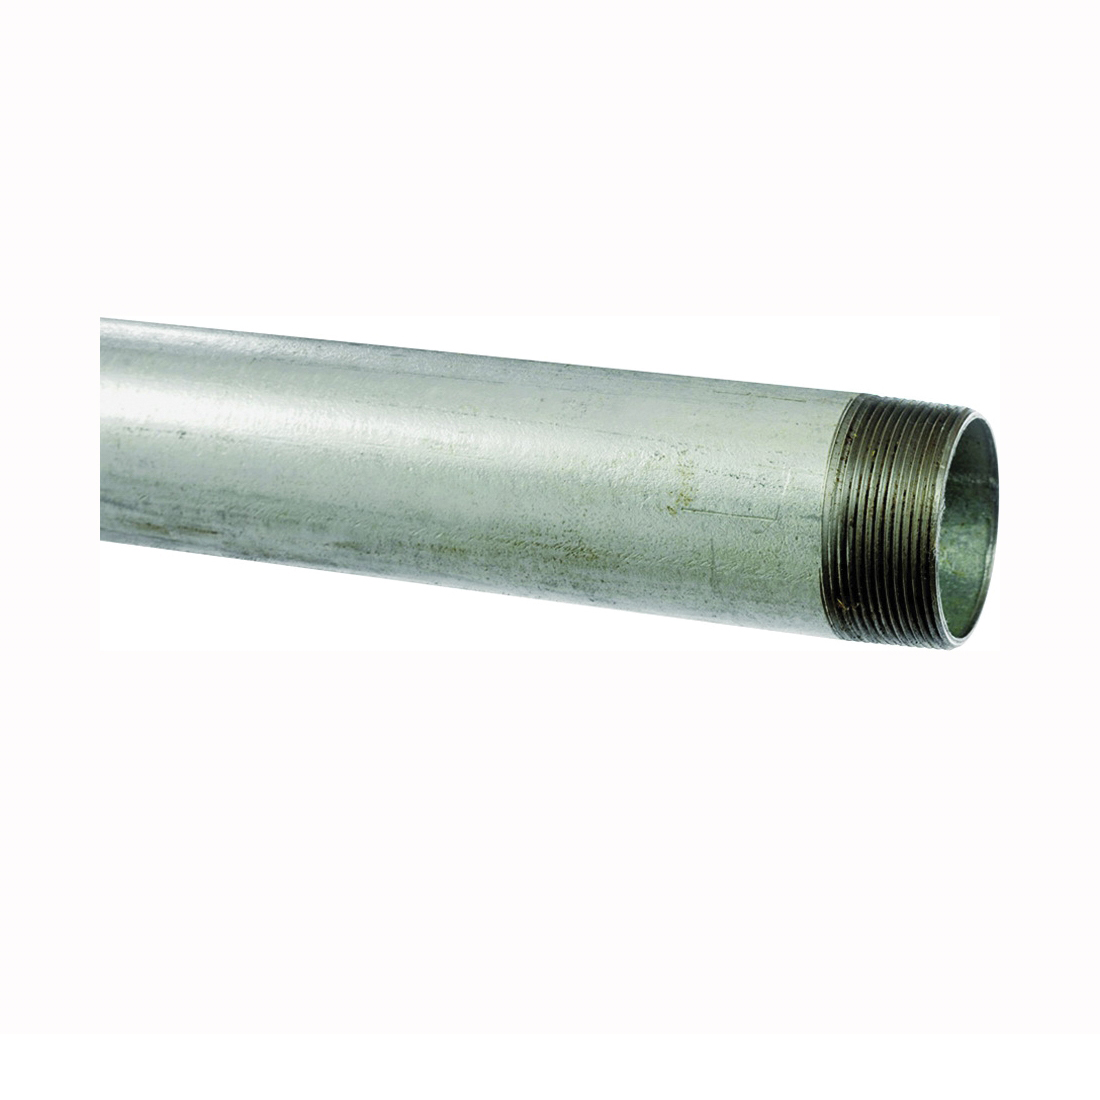 Picture of KLOECKNER METALS GALV-1 Pipe, 1 in, 10 ft L, Threaded